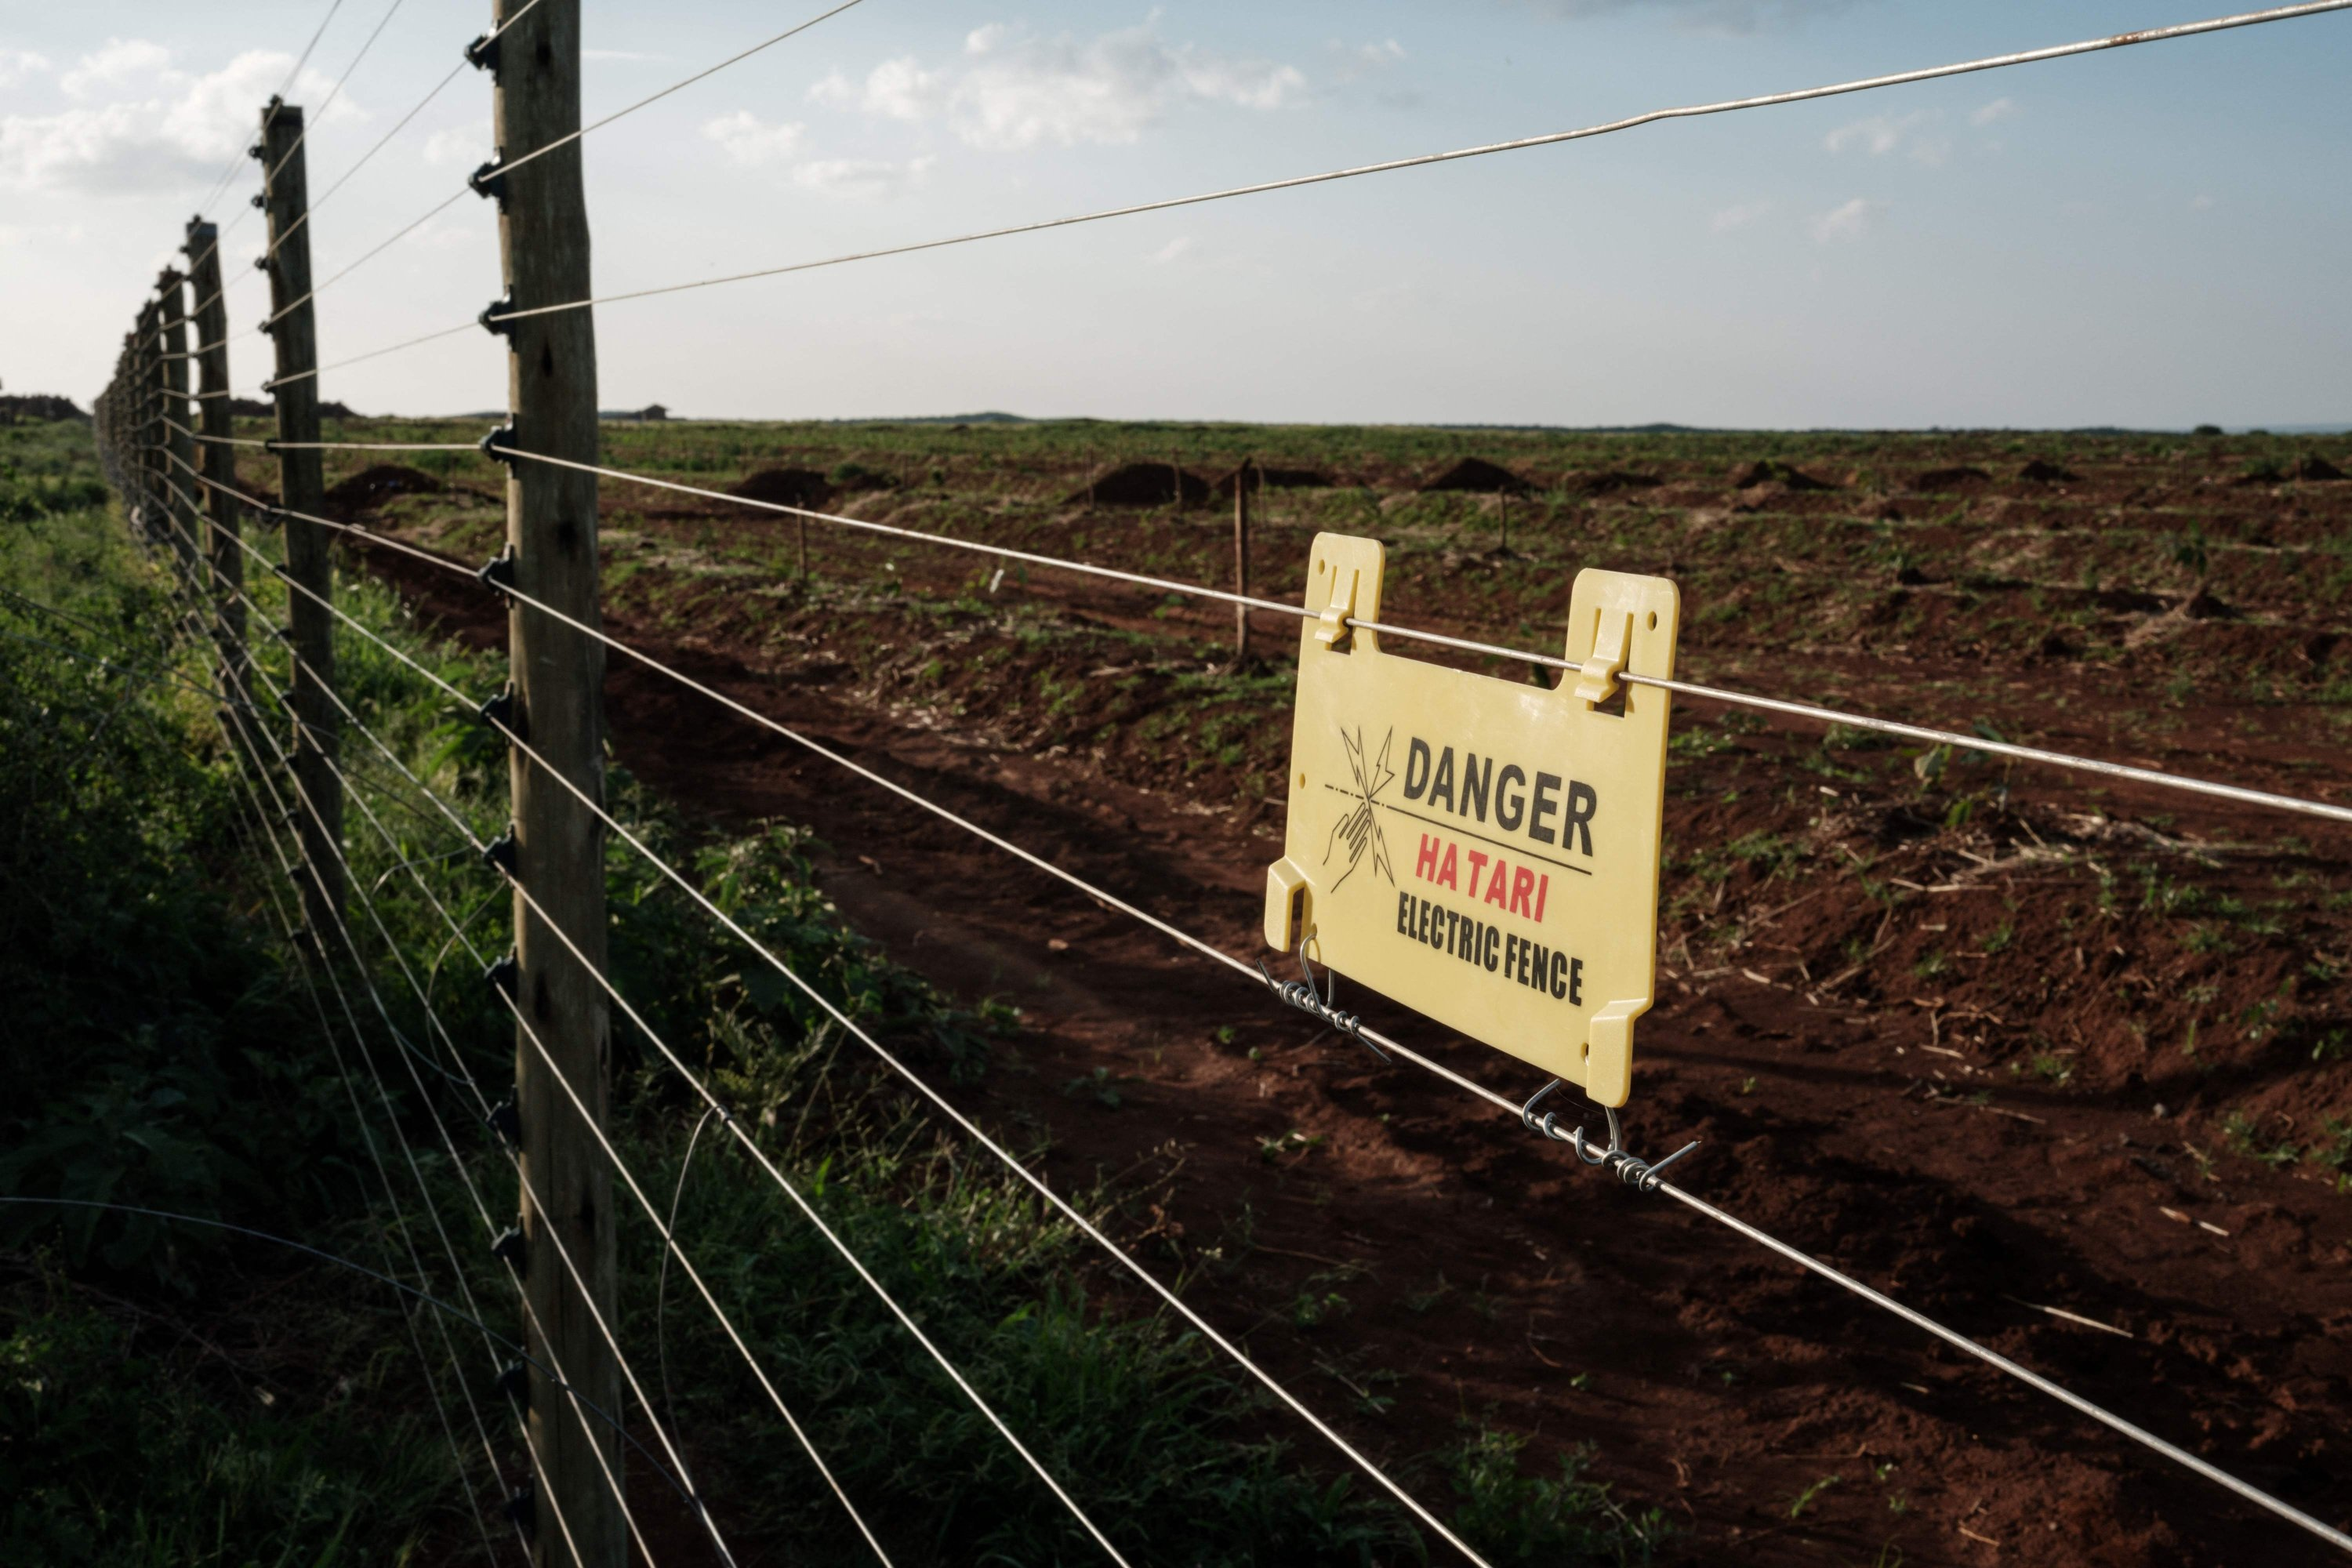 A general view of the electric fence at KiliAvo Fresh Ltd in Kimana, Kenya, on March 1, 2021. (AFP Photo)